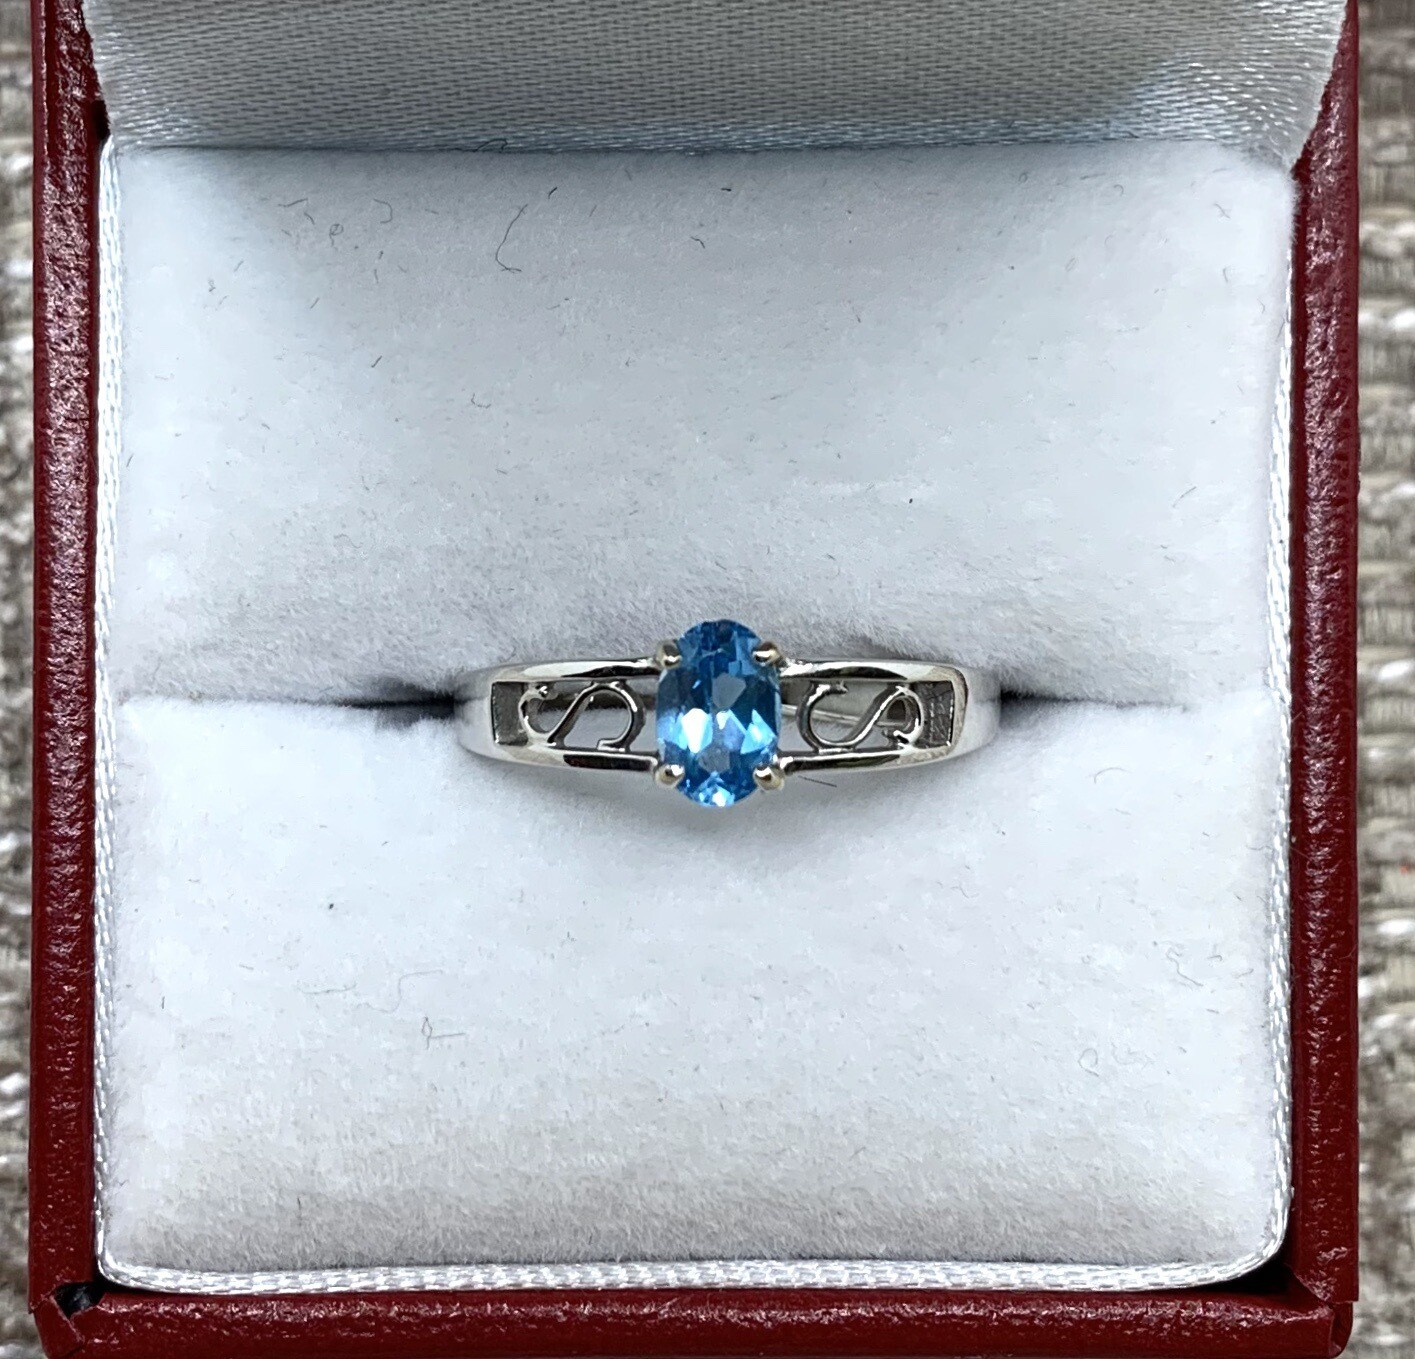 Oval Blue Topaz With Swirl Accent Band Ring